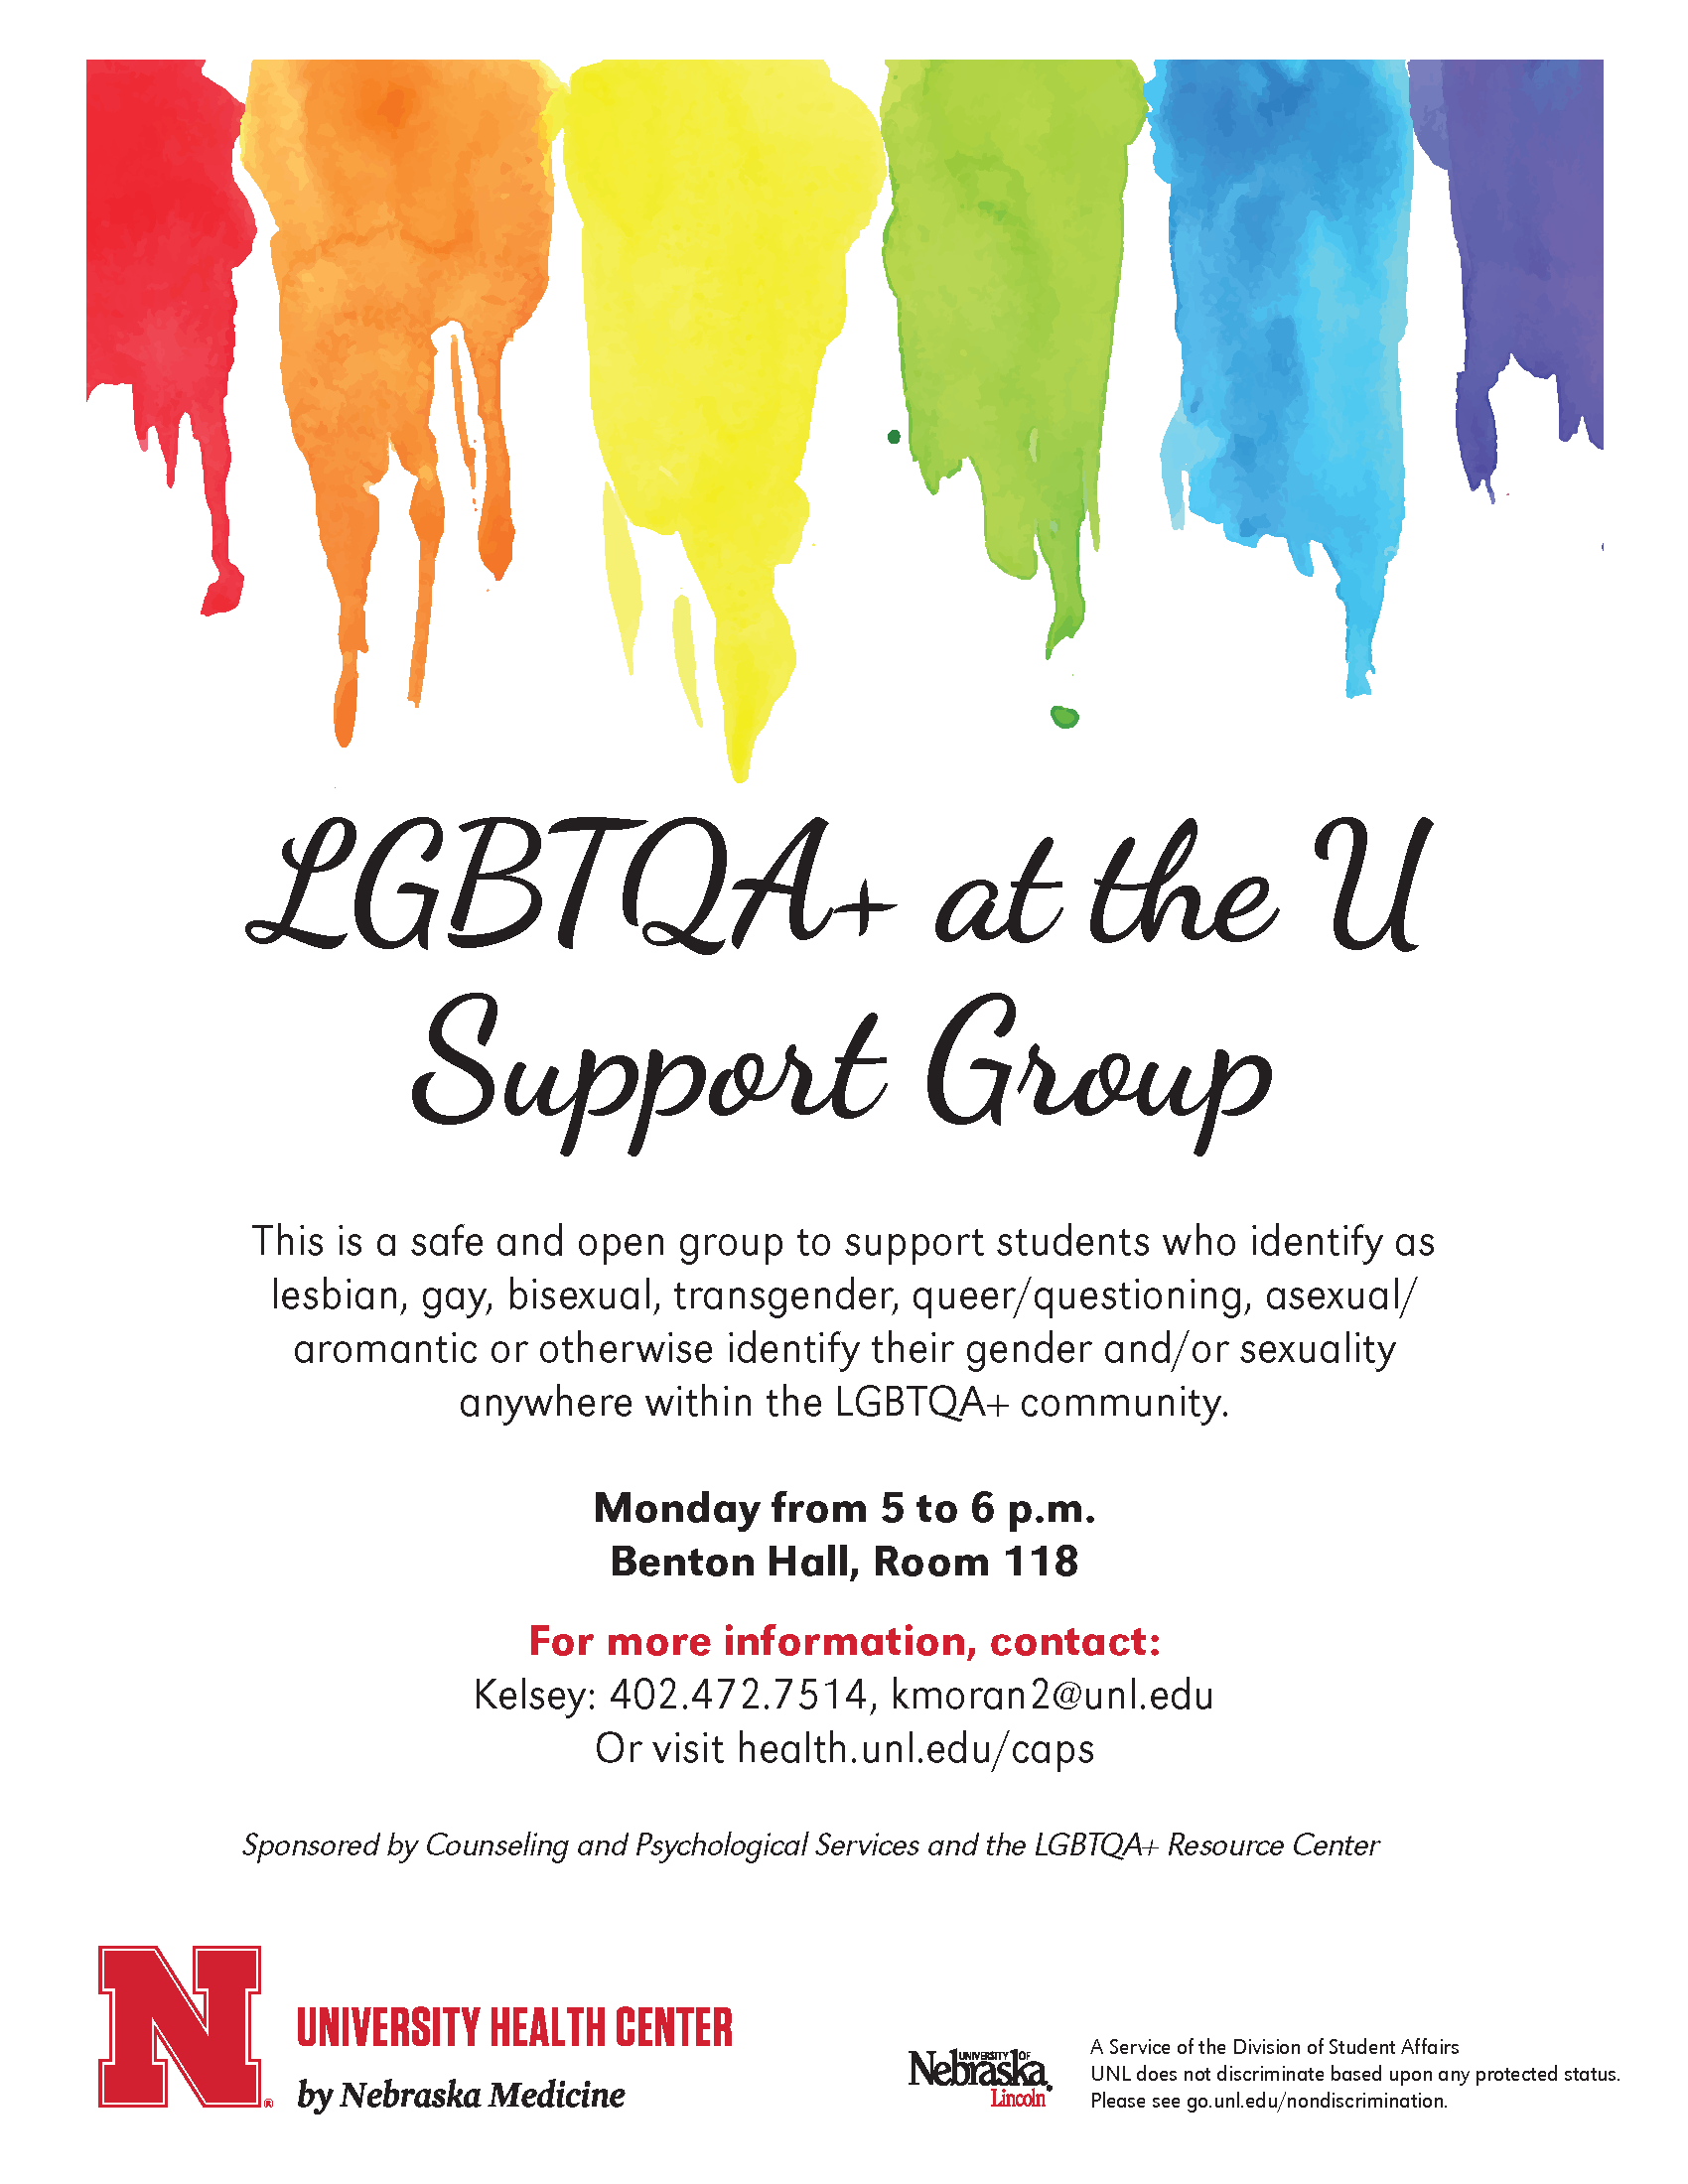 Questioning sexuality support group